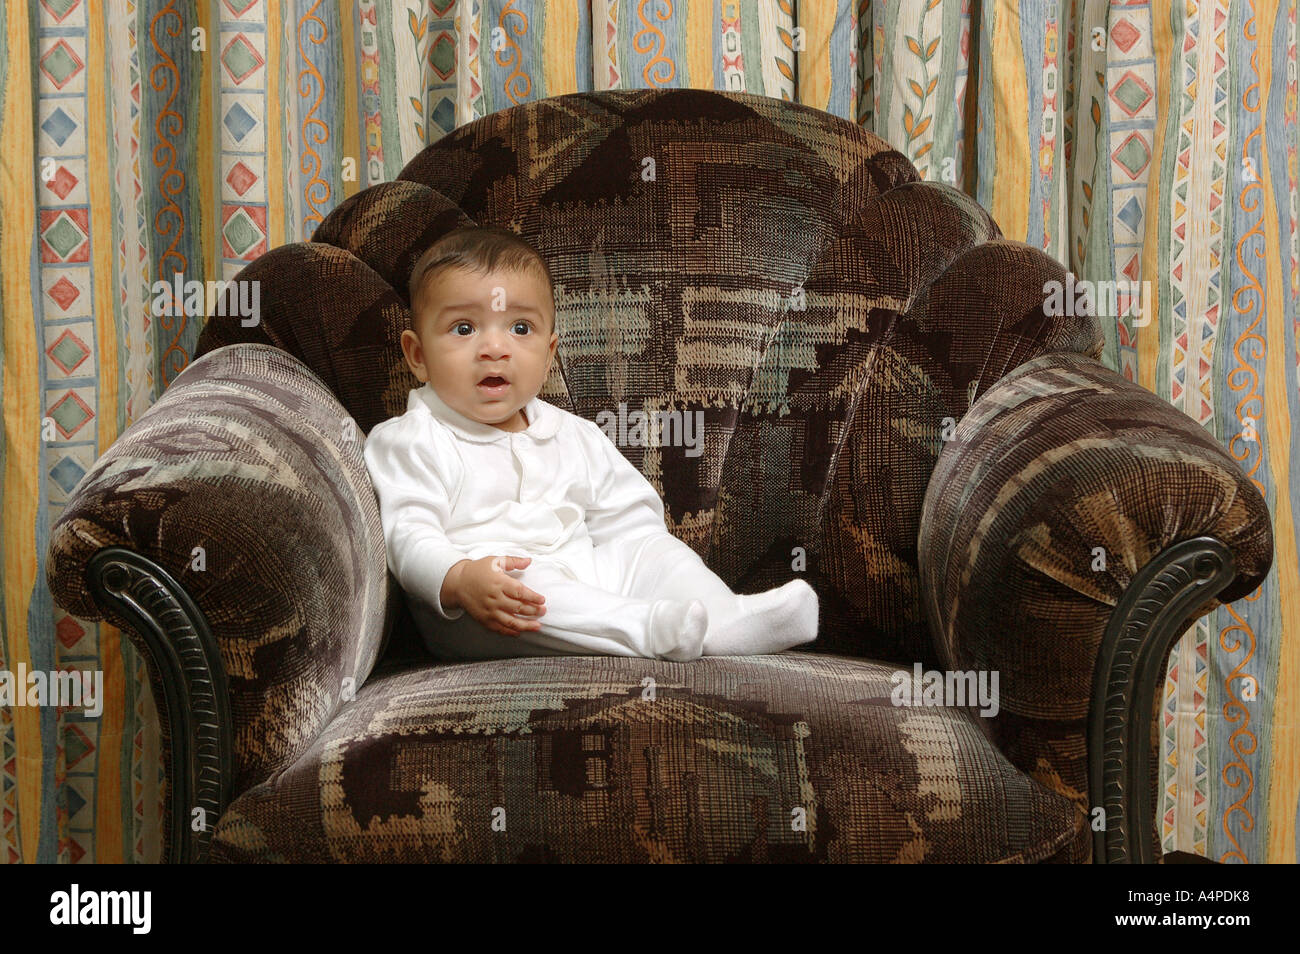 Ang77653 Young Indian Boy Four Months Old Sitting On Sofa Chair Like